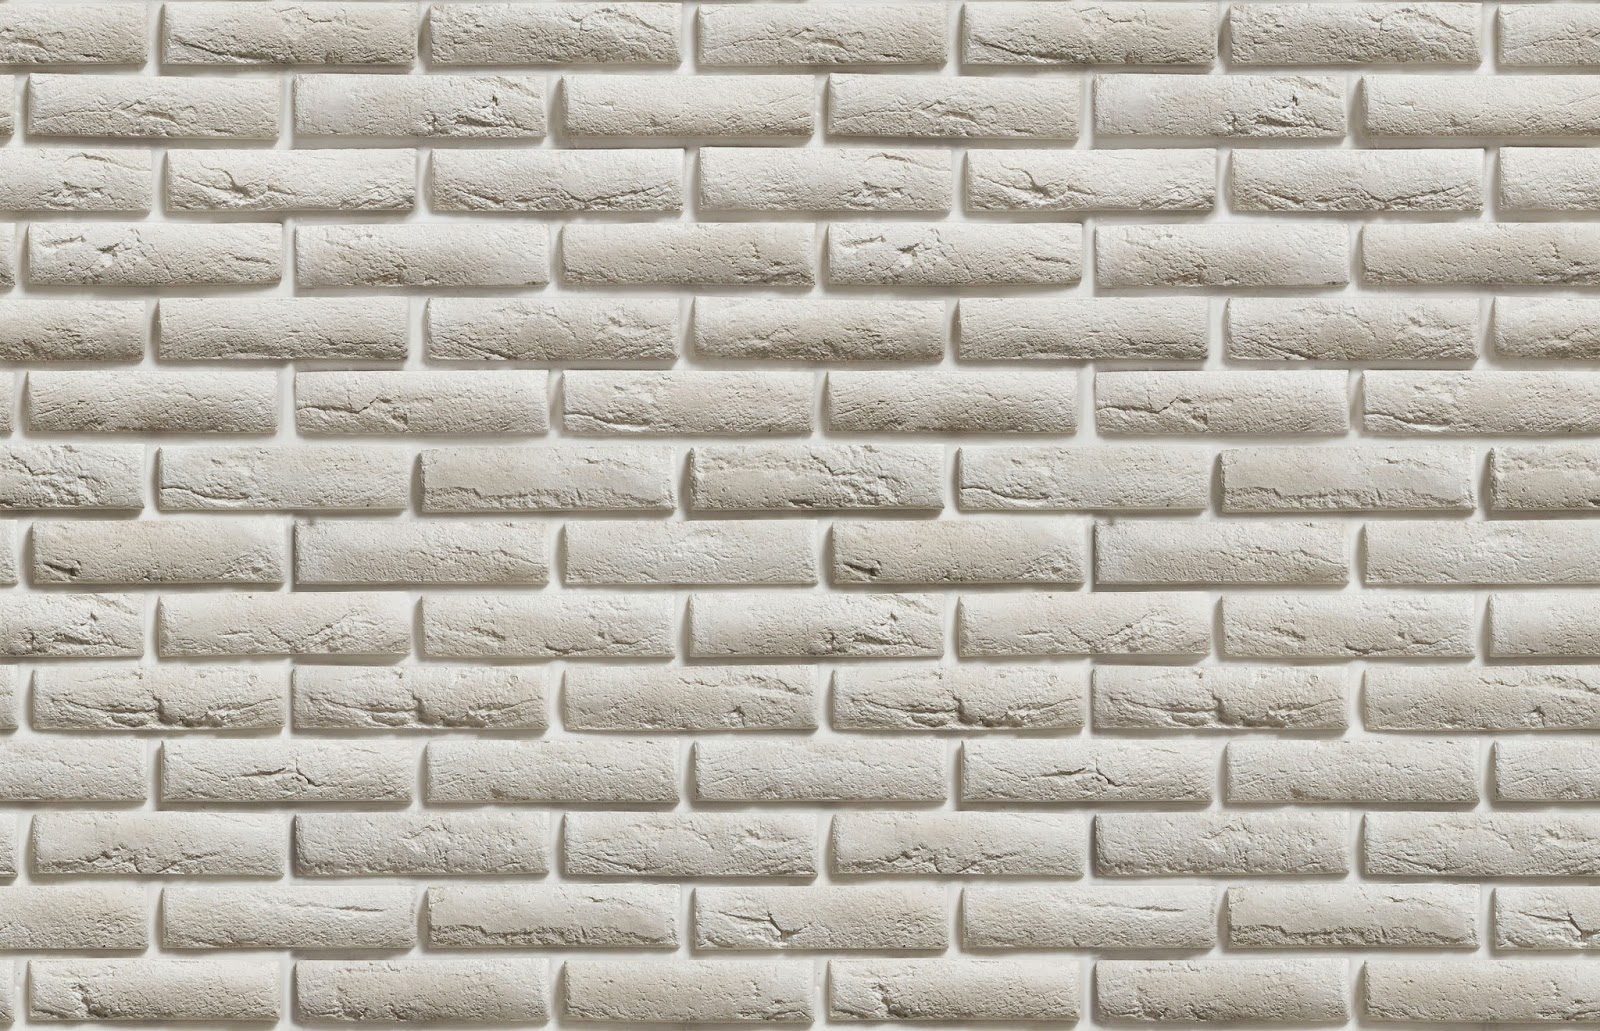 tileable white brick wall texture maps texturise free seamless textures with maps. Black Bedroom Furniture Sets. Home Design Ideas